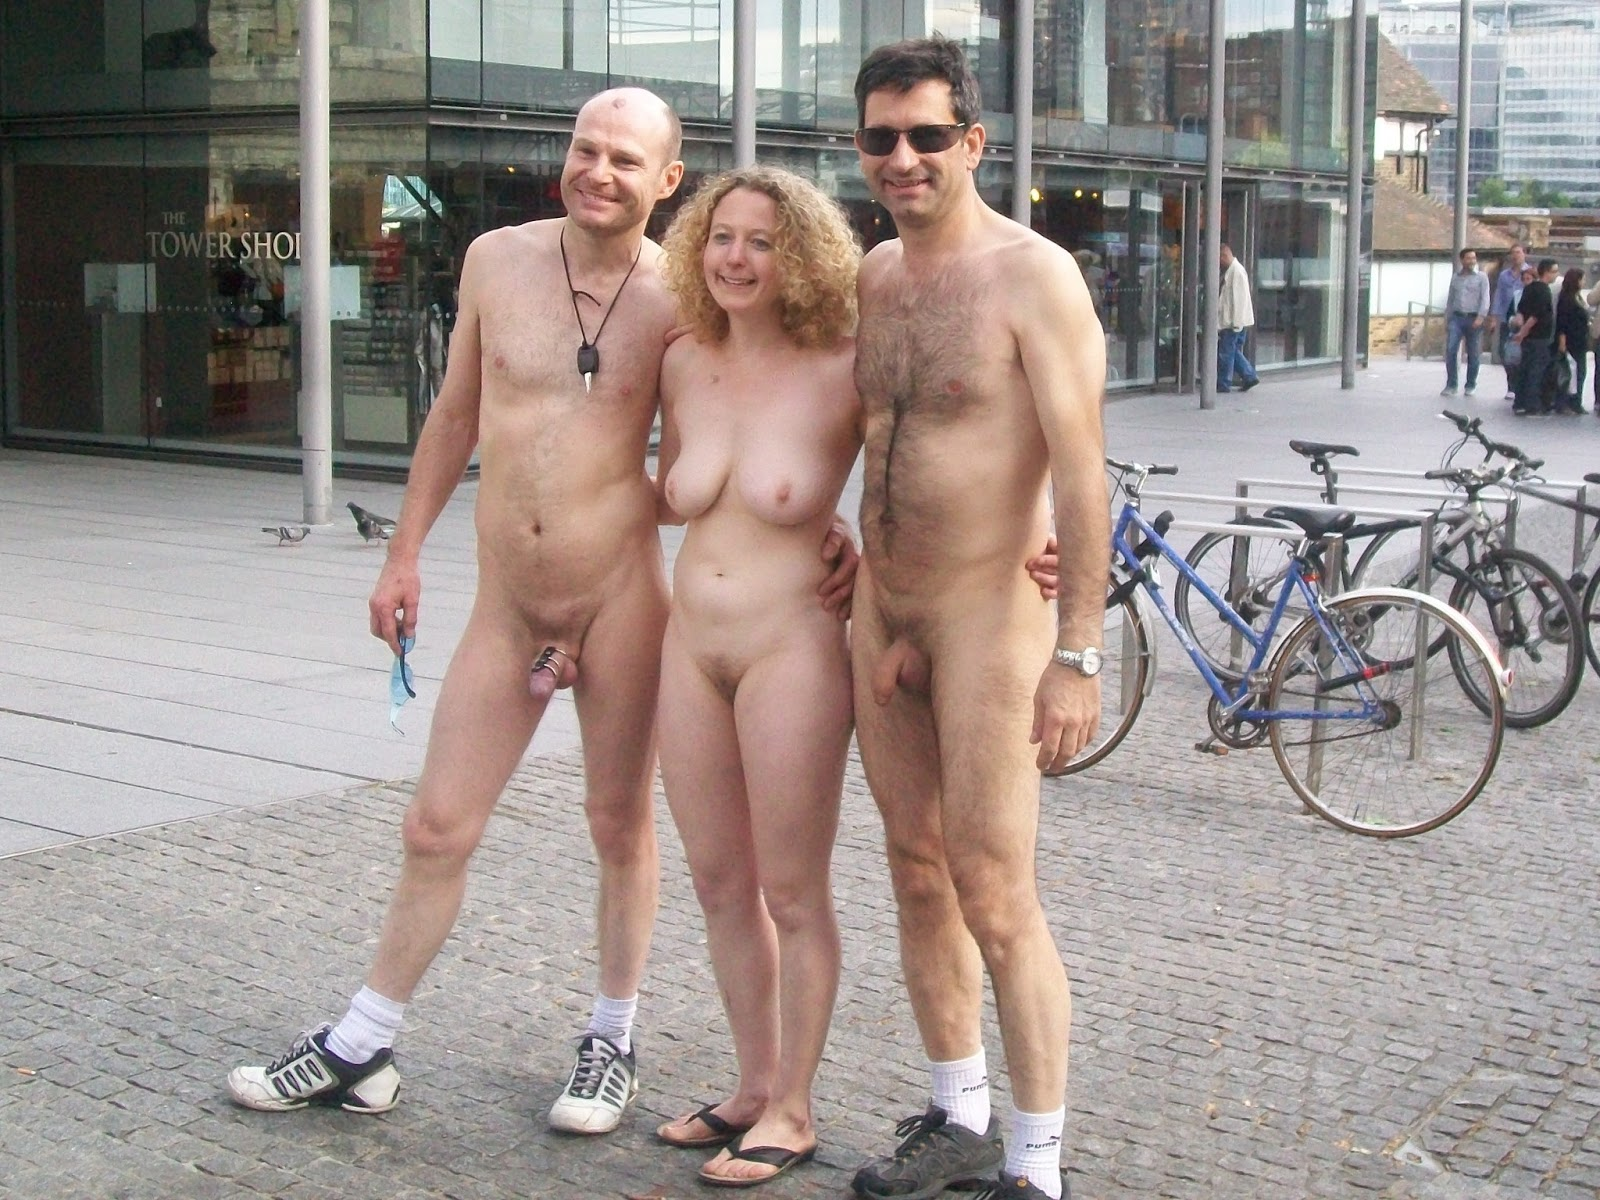 Xxx world naked bike ride